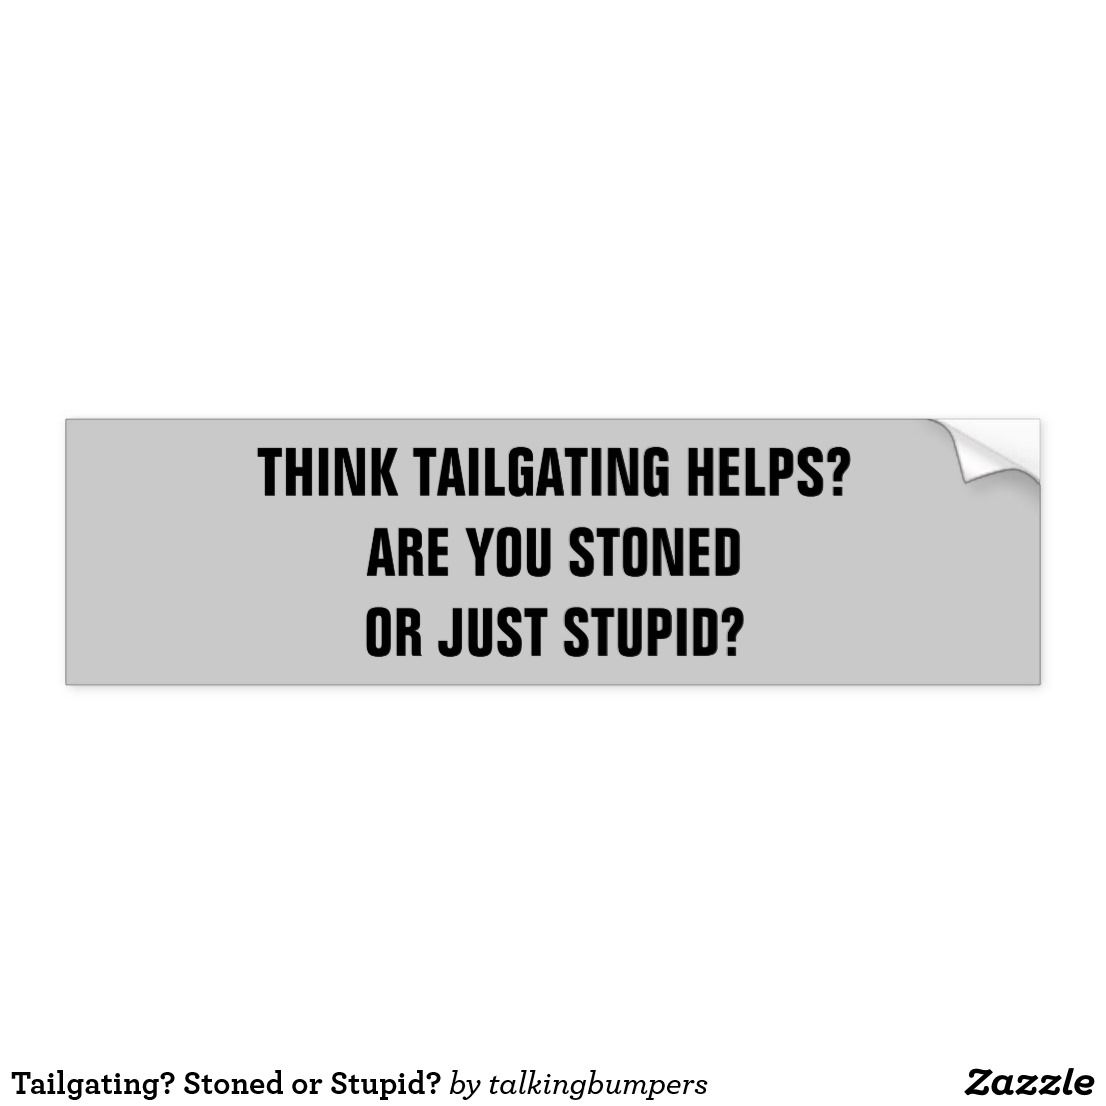 Tailgating stoned or stupid bumper sticker i love insulting tailgaters think tailgating helps tailgating does not help the tailgater or anyone else